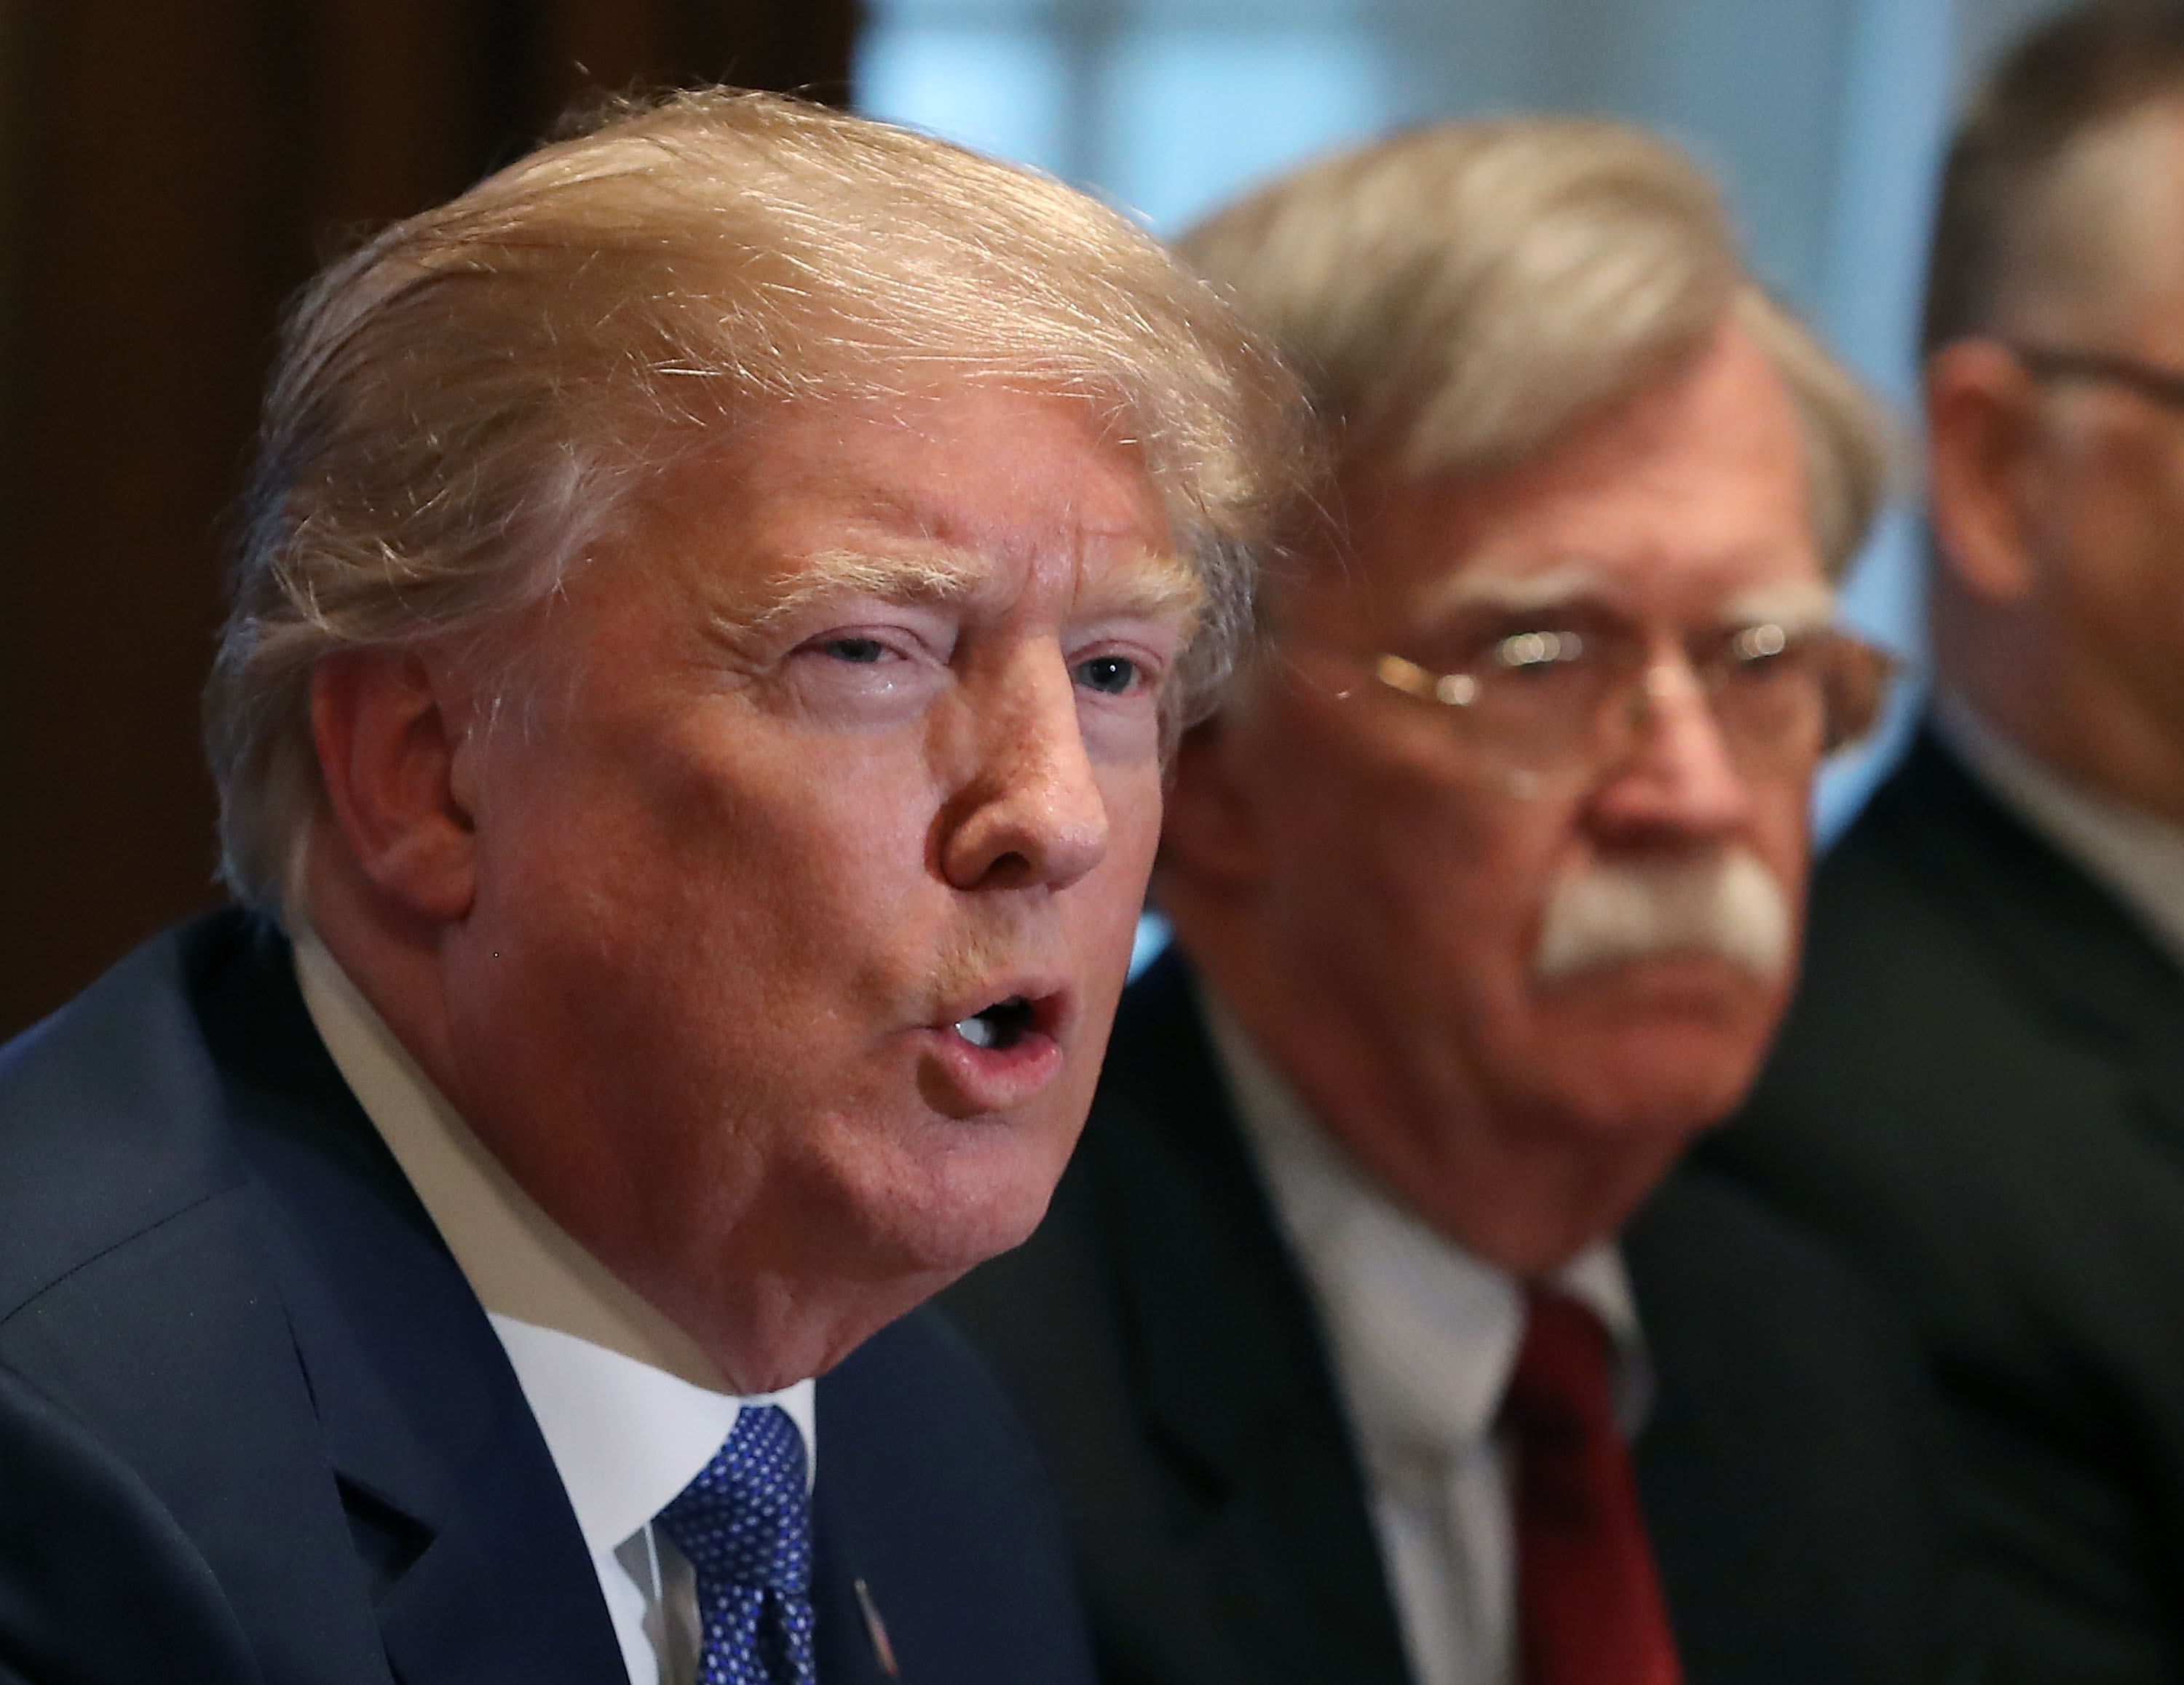 New York Times: Bolton wrote he was concerned Trump was granting favors to autocratic leaders